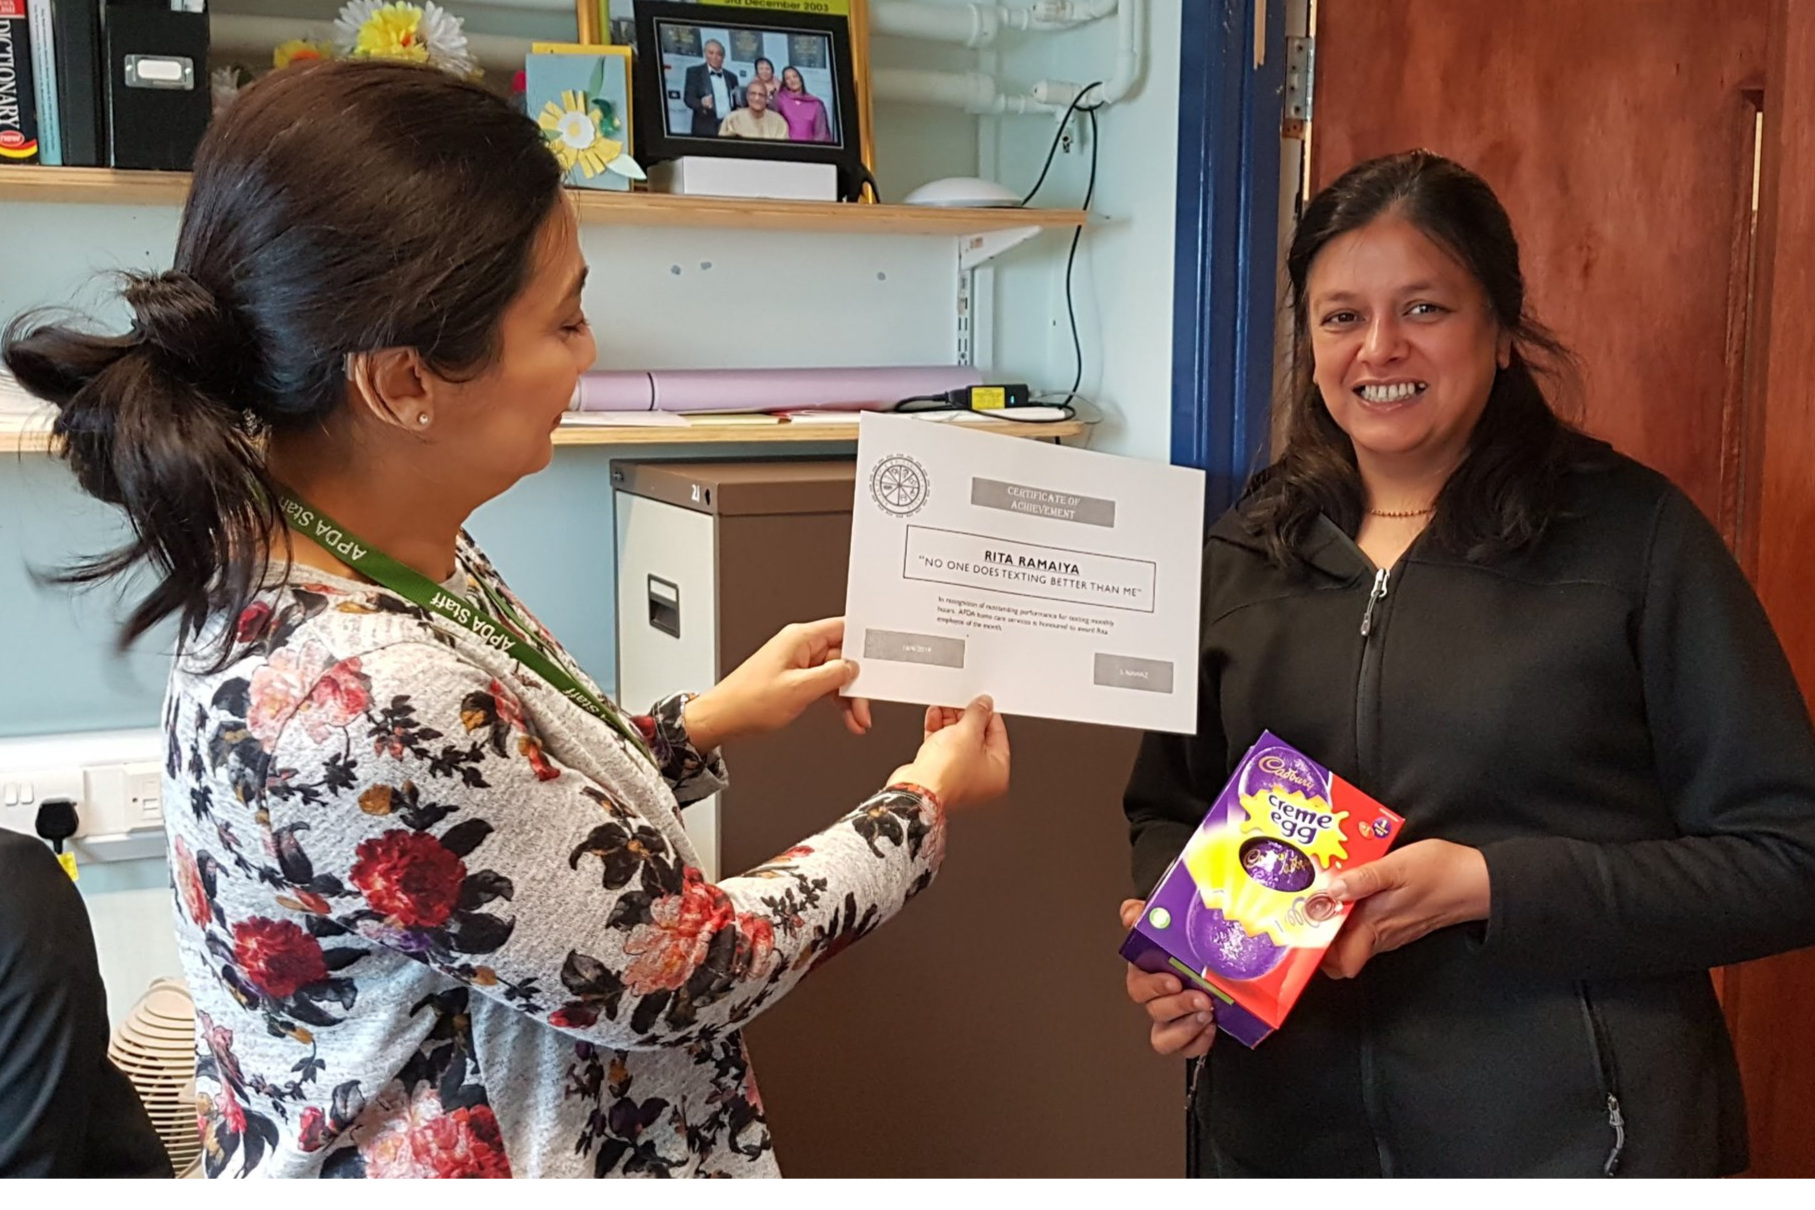 Rita our Carer received a certificate for achievement for communicating presented by Zeenat Jeewa, CEO -